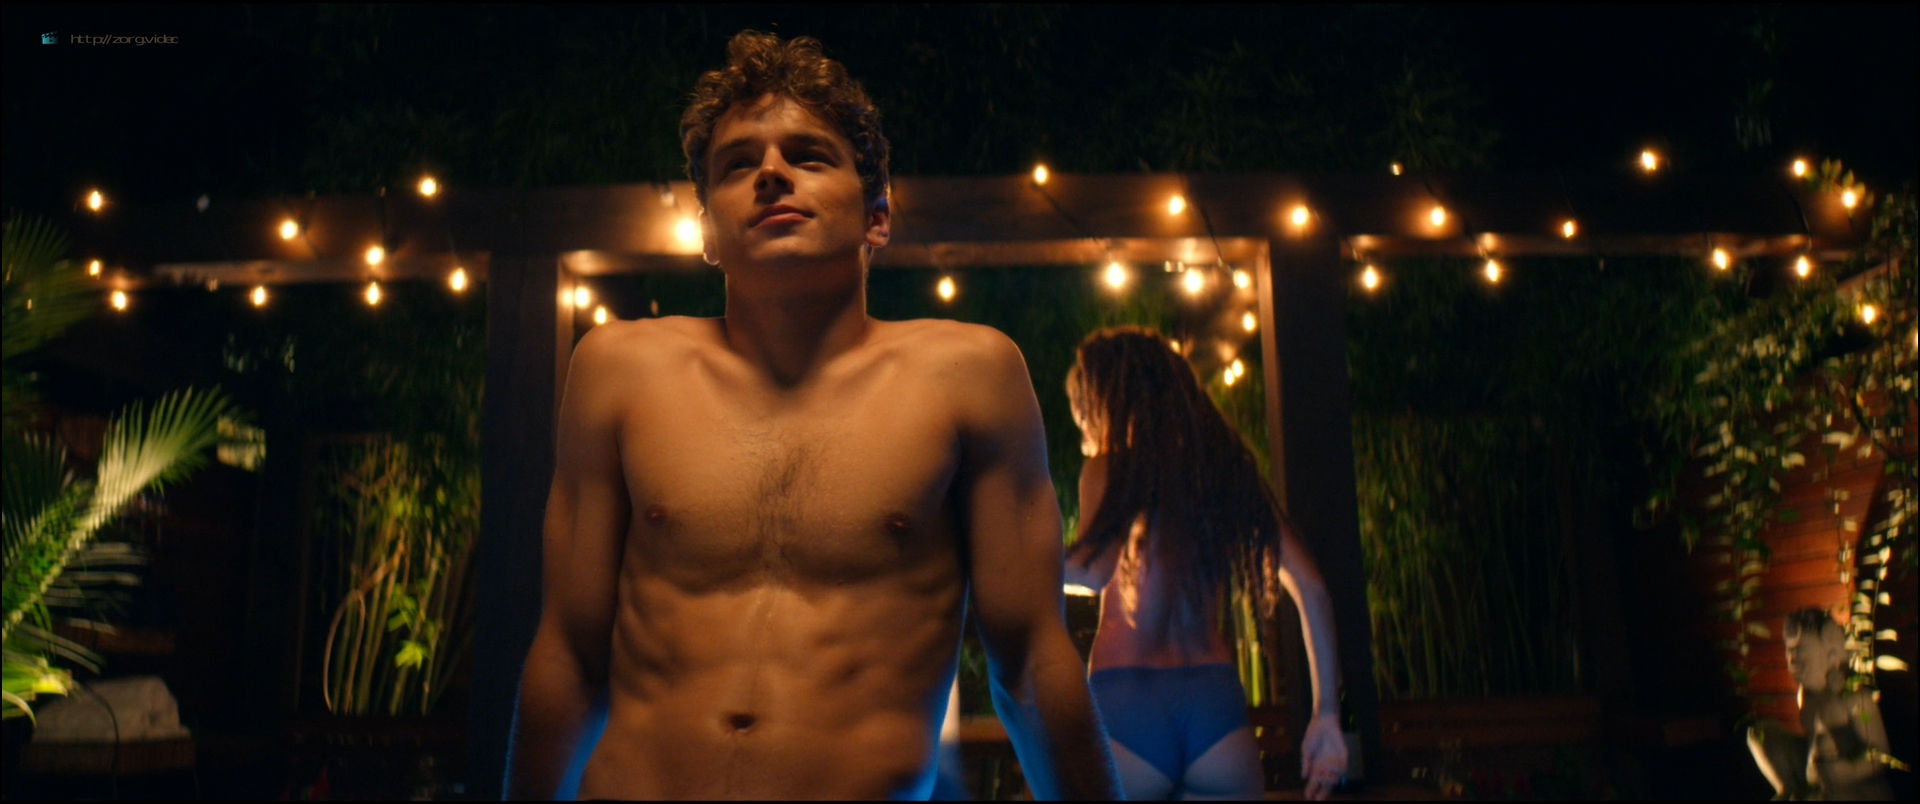 Danielle Campbell hot sexy Paulina Singer hot - Tell Me a Story (2018) s1e-1-5 HD 1080p (6)